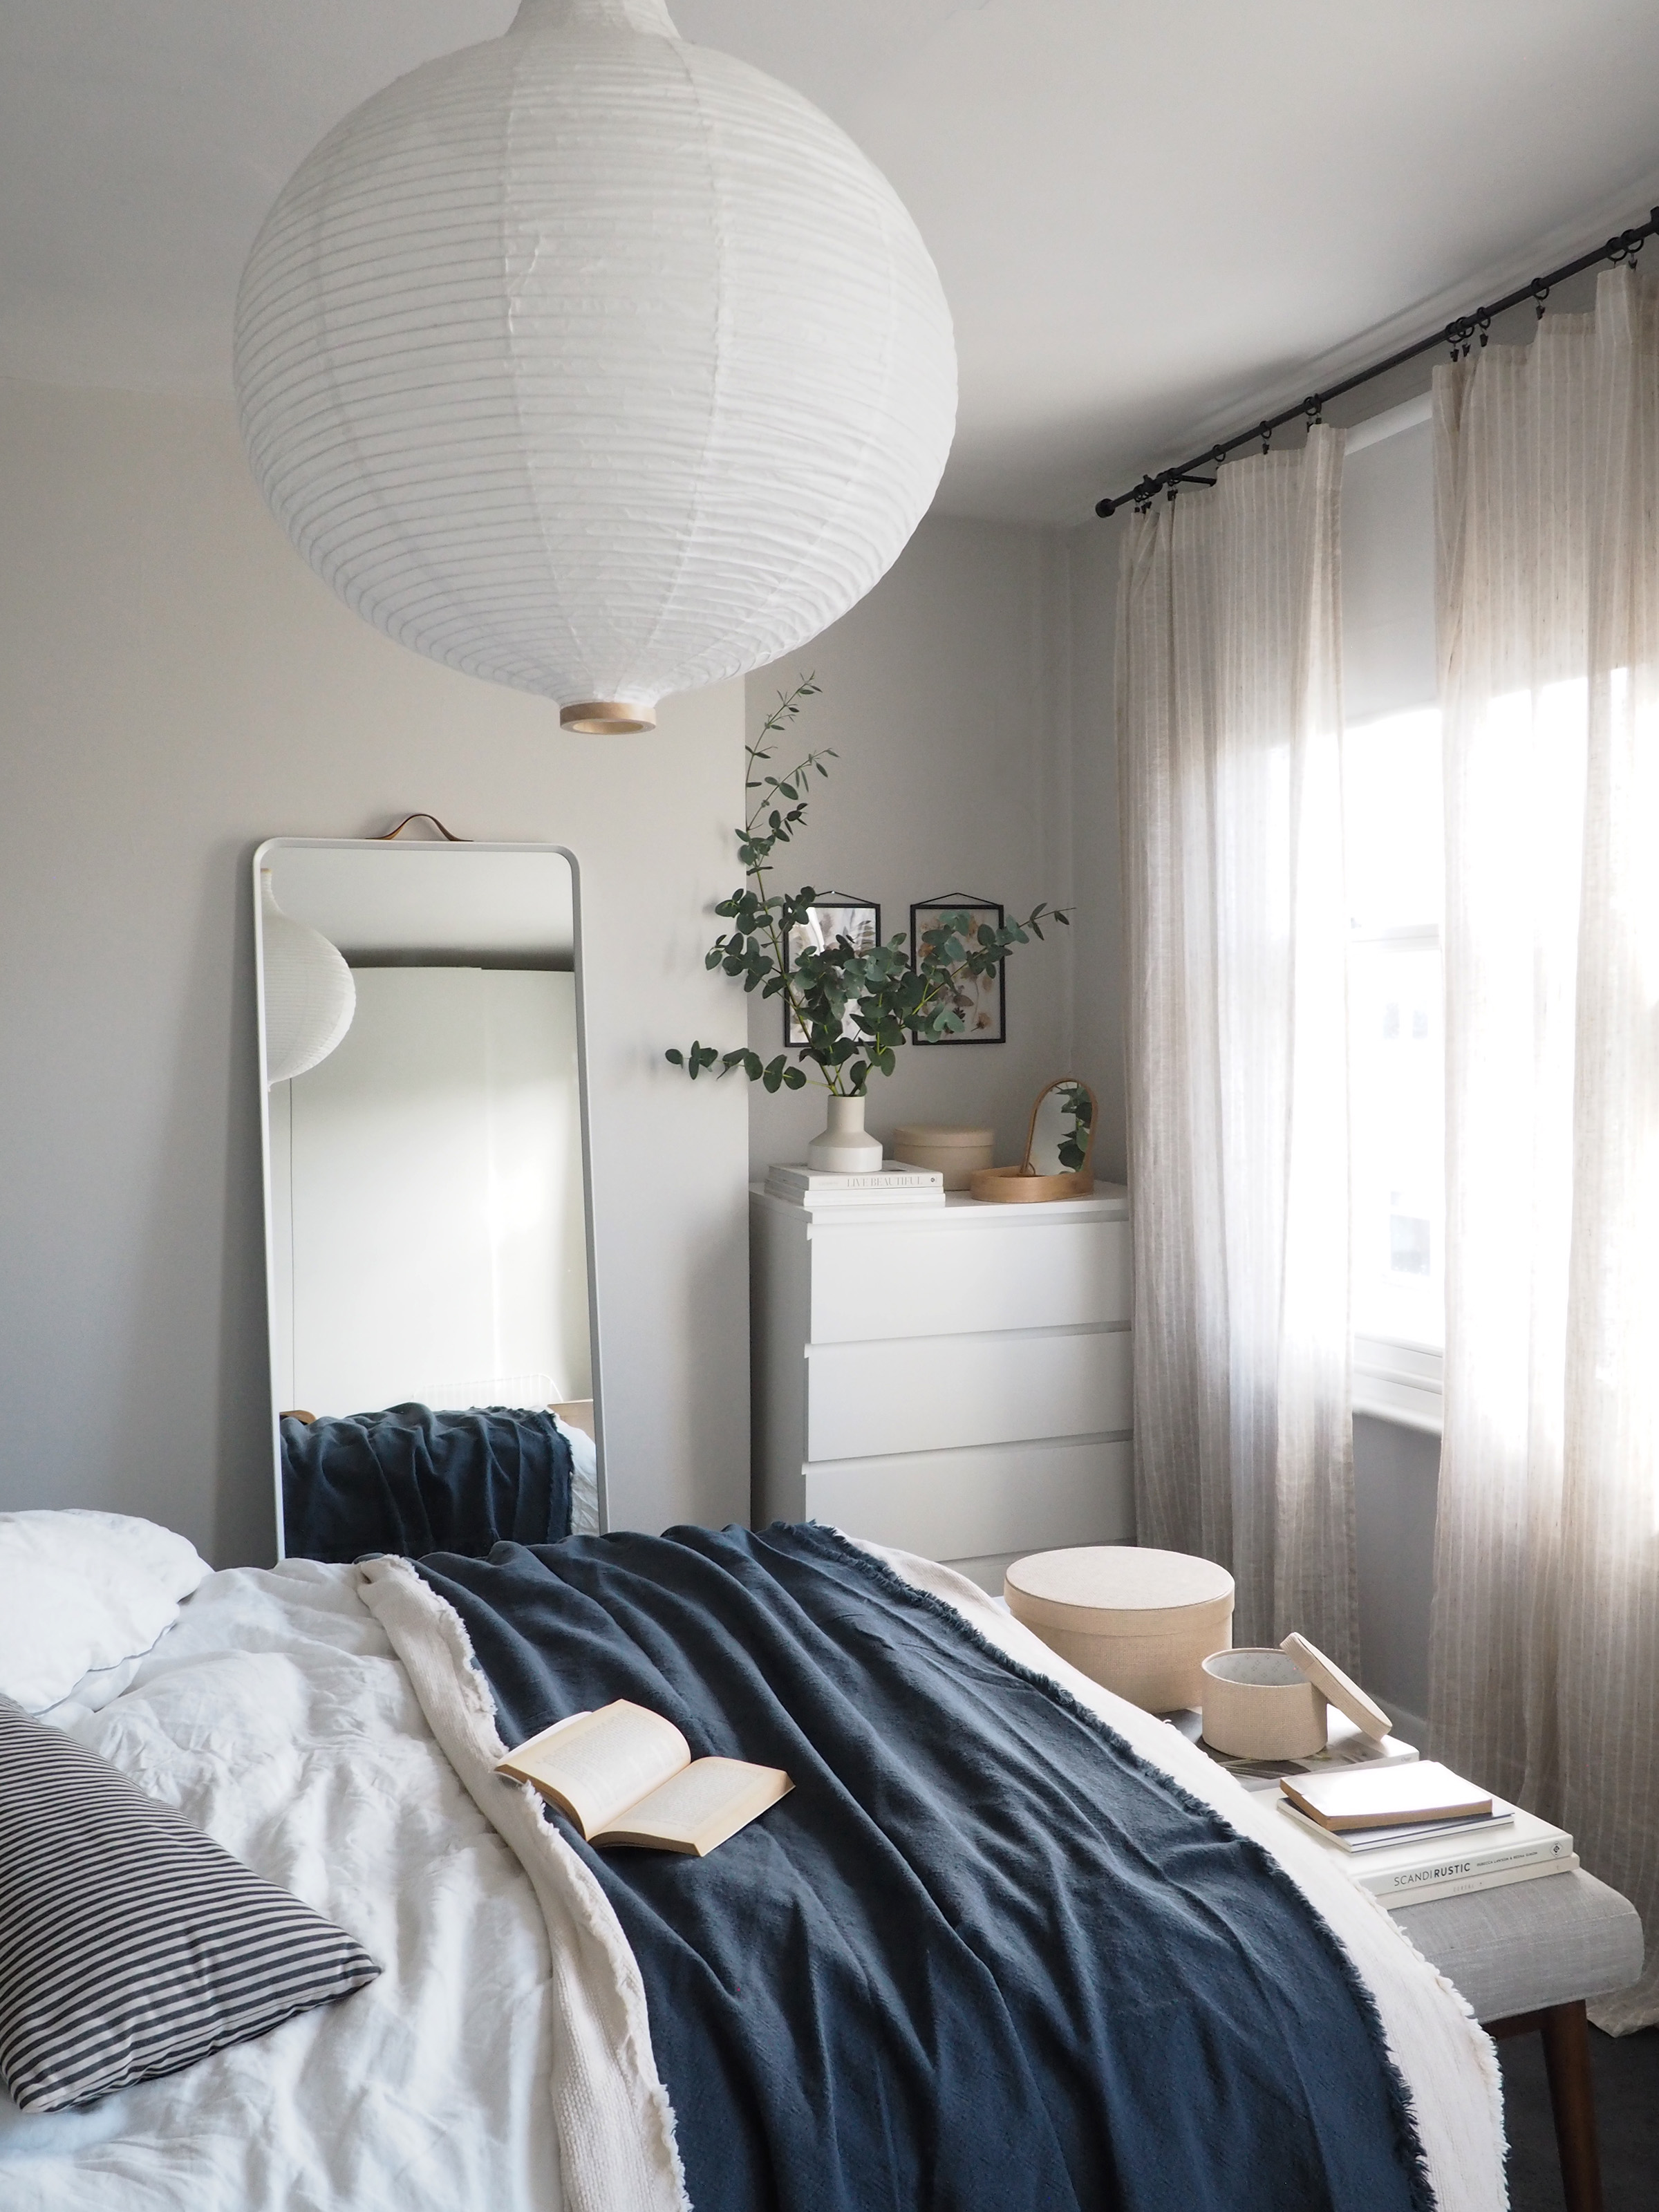 Ad How To Create A Calm Bedroom And Sleep Better With Ikea